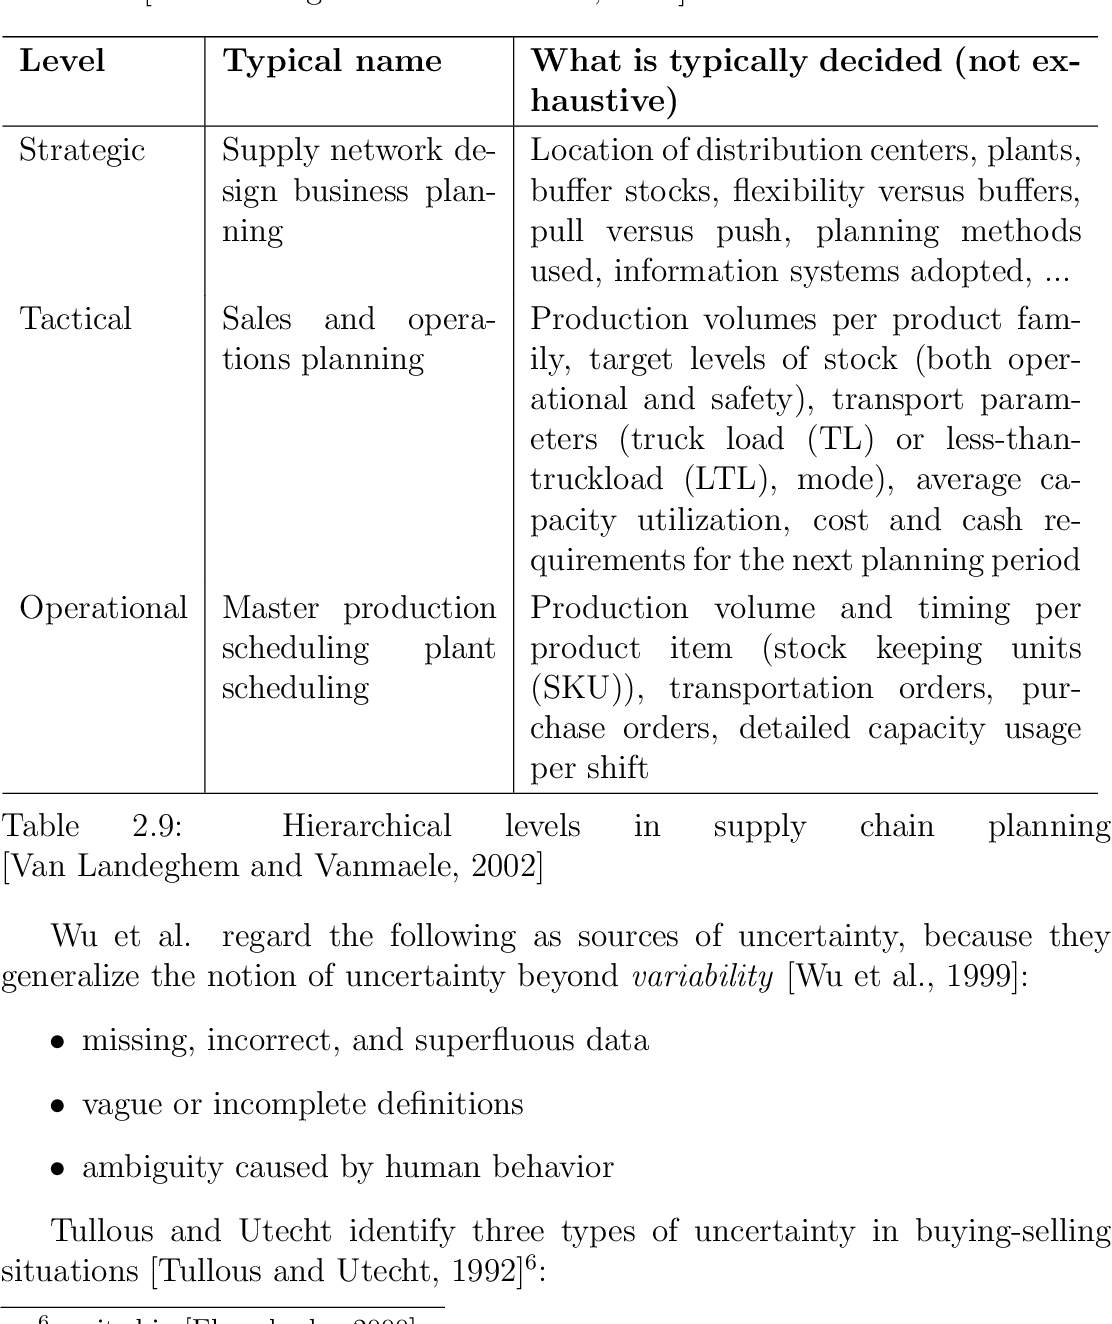 Table 2.9: Hierarchical levels in supply chain planning [Van Landeghem and Vanmaele, 2002]